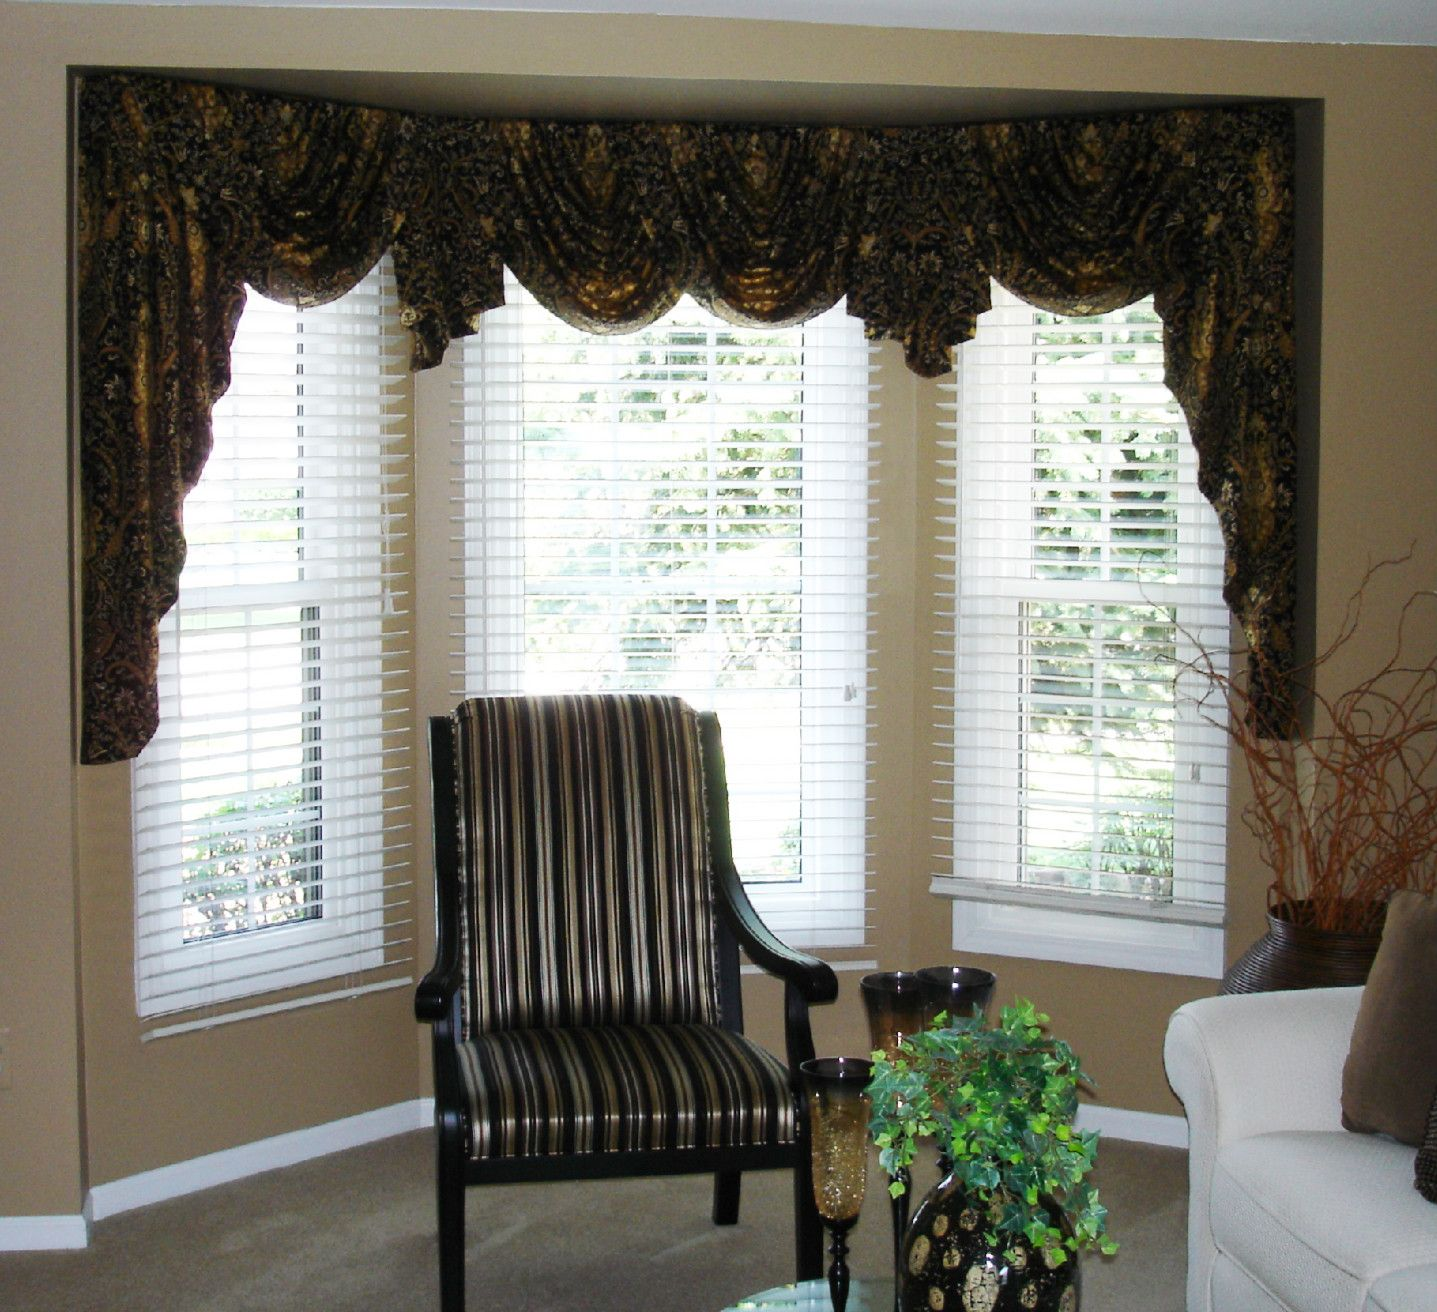 Bay window curtains for living room - Valances For Living Room Creating Comfort Valances For Bay Windows In Living Room Valances For Bay Windows In Living Room More Window Treatments Ideas